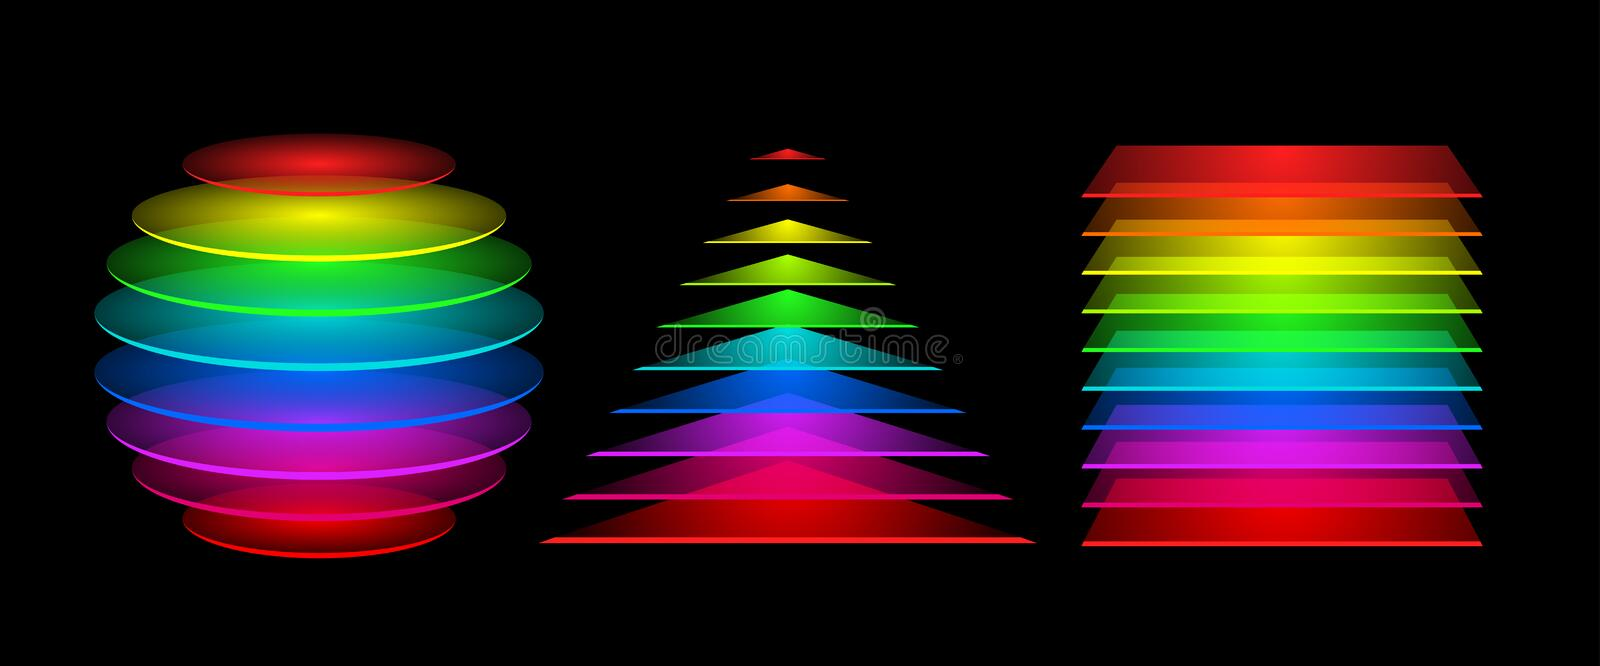 Colorful geometrical figures royalty free illustration